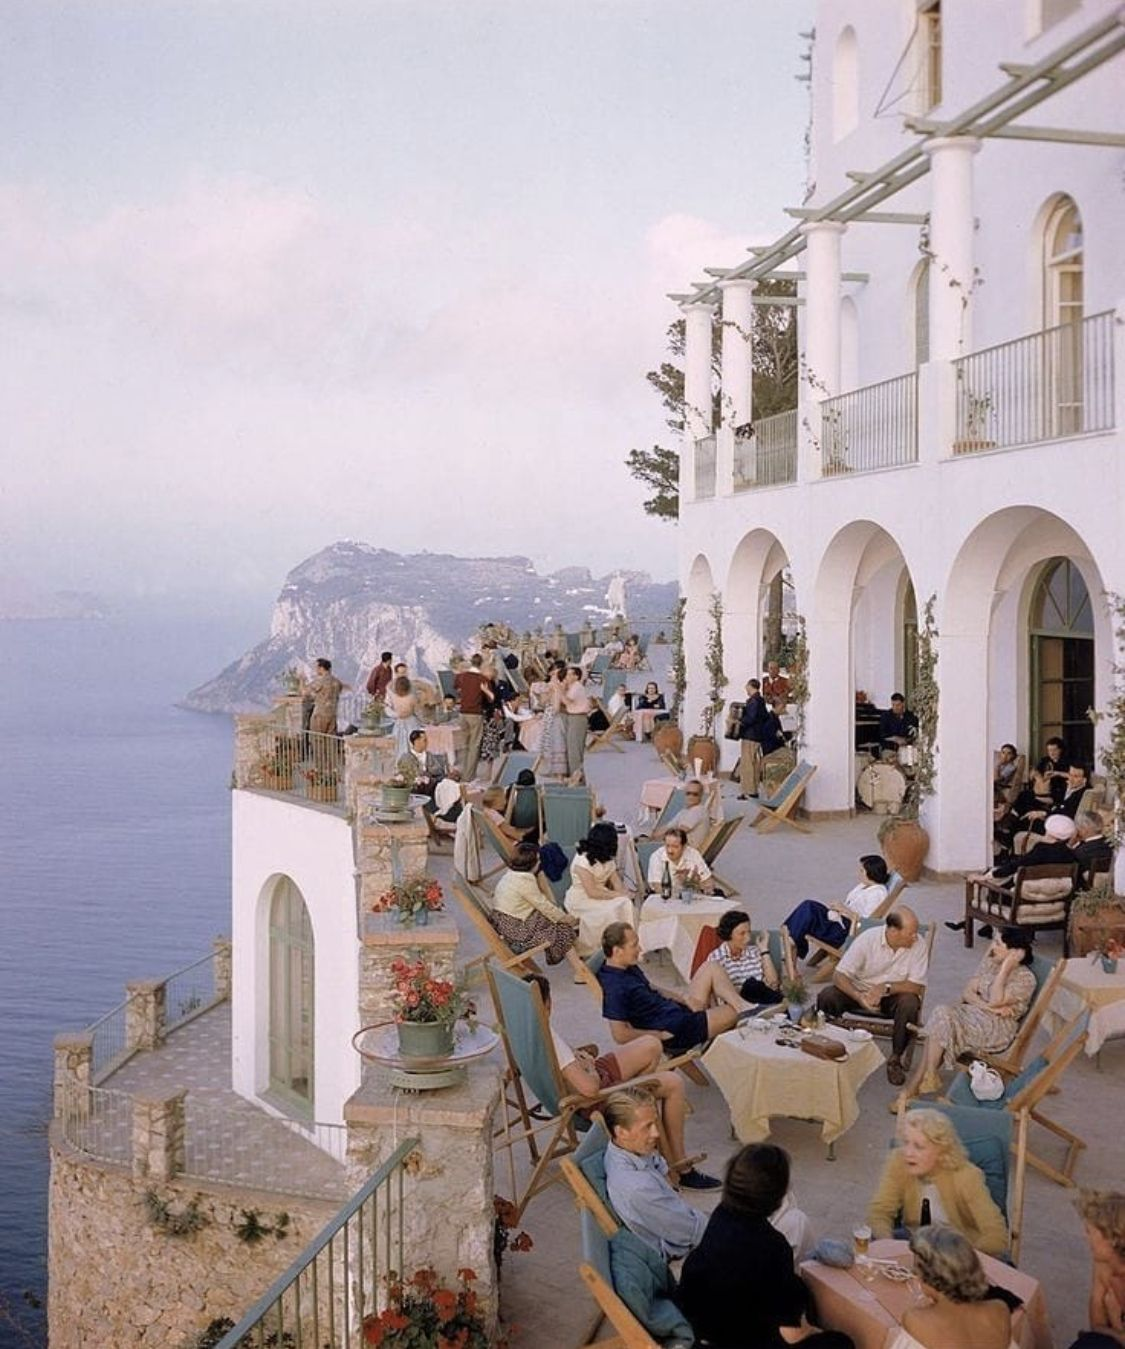 Aperitivo hour in Capri by Slim Aarons